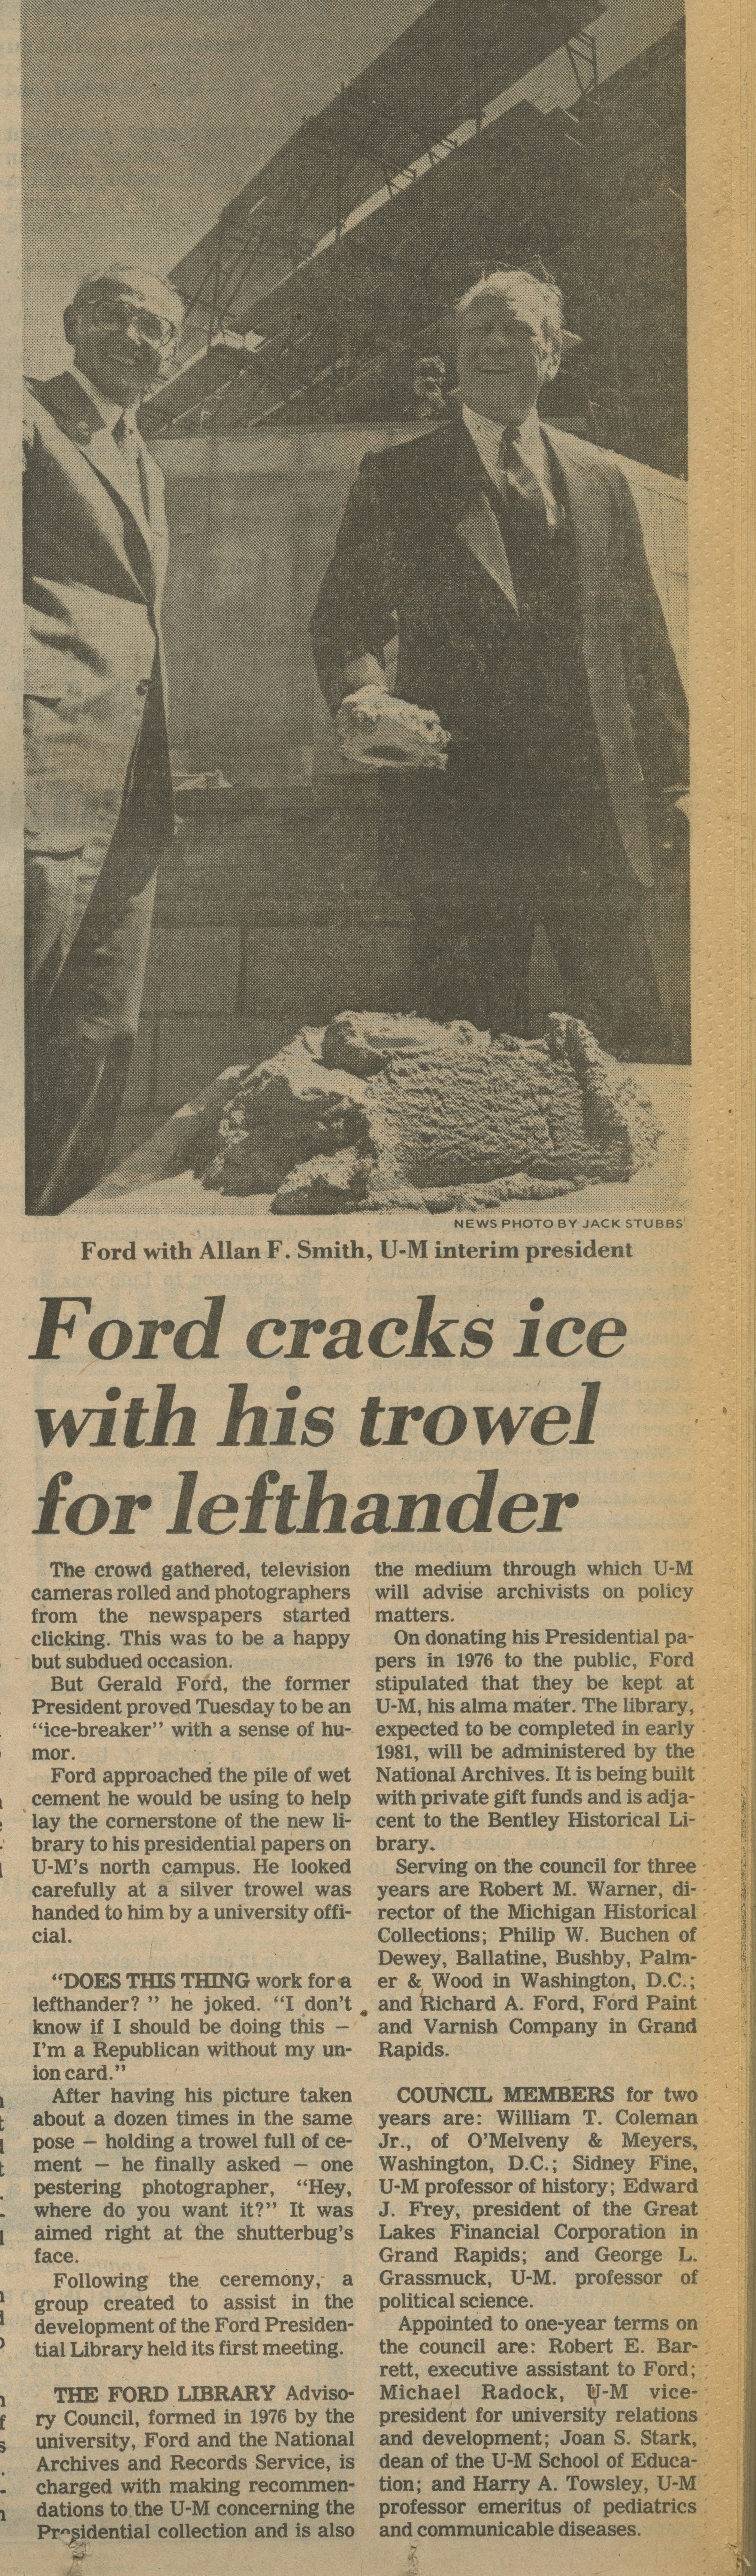 Ford Cracks Ice With His Trowel For Lefthander image